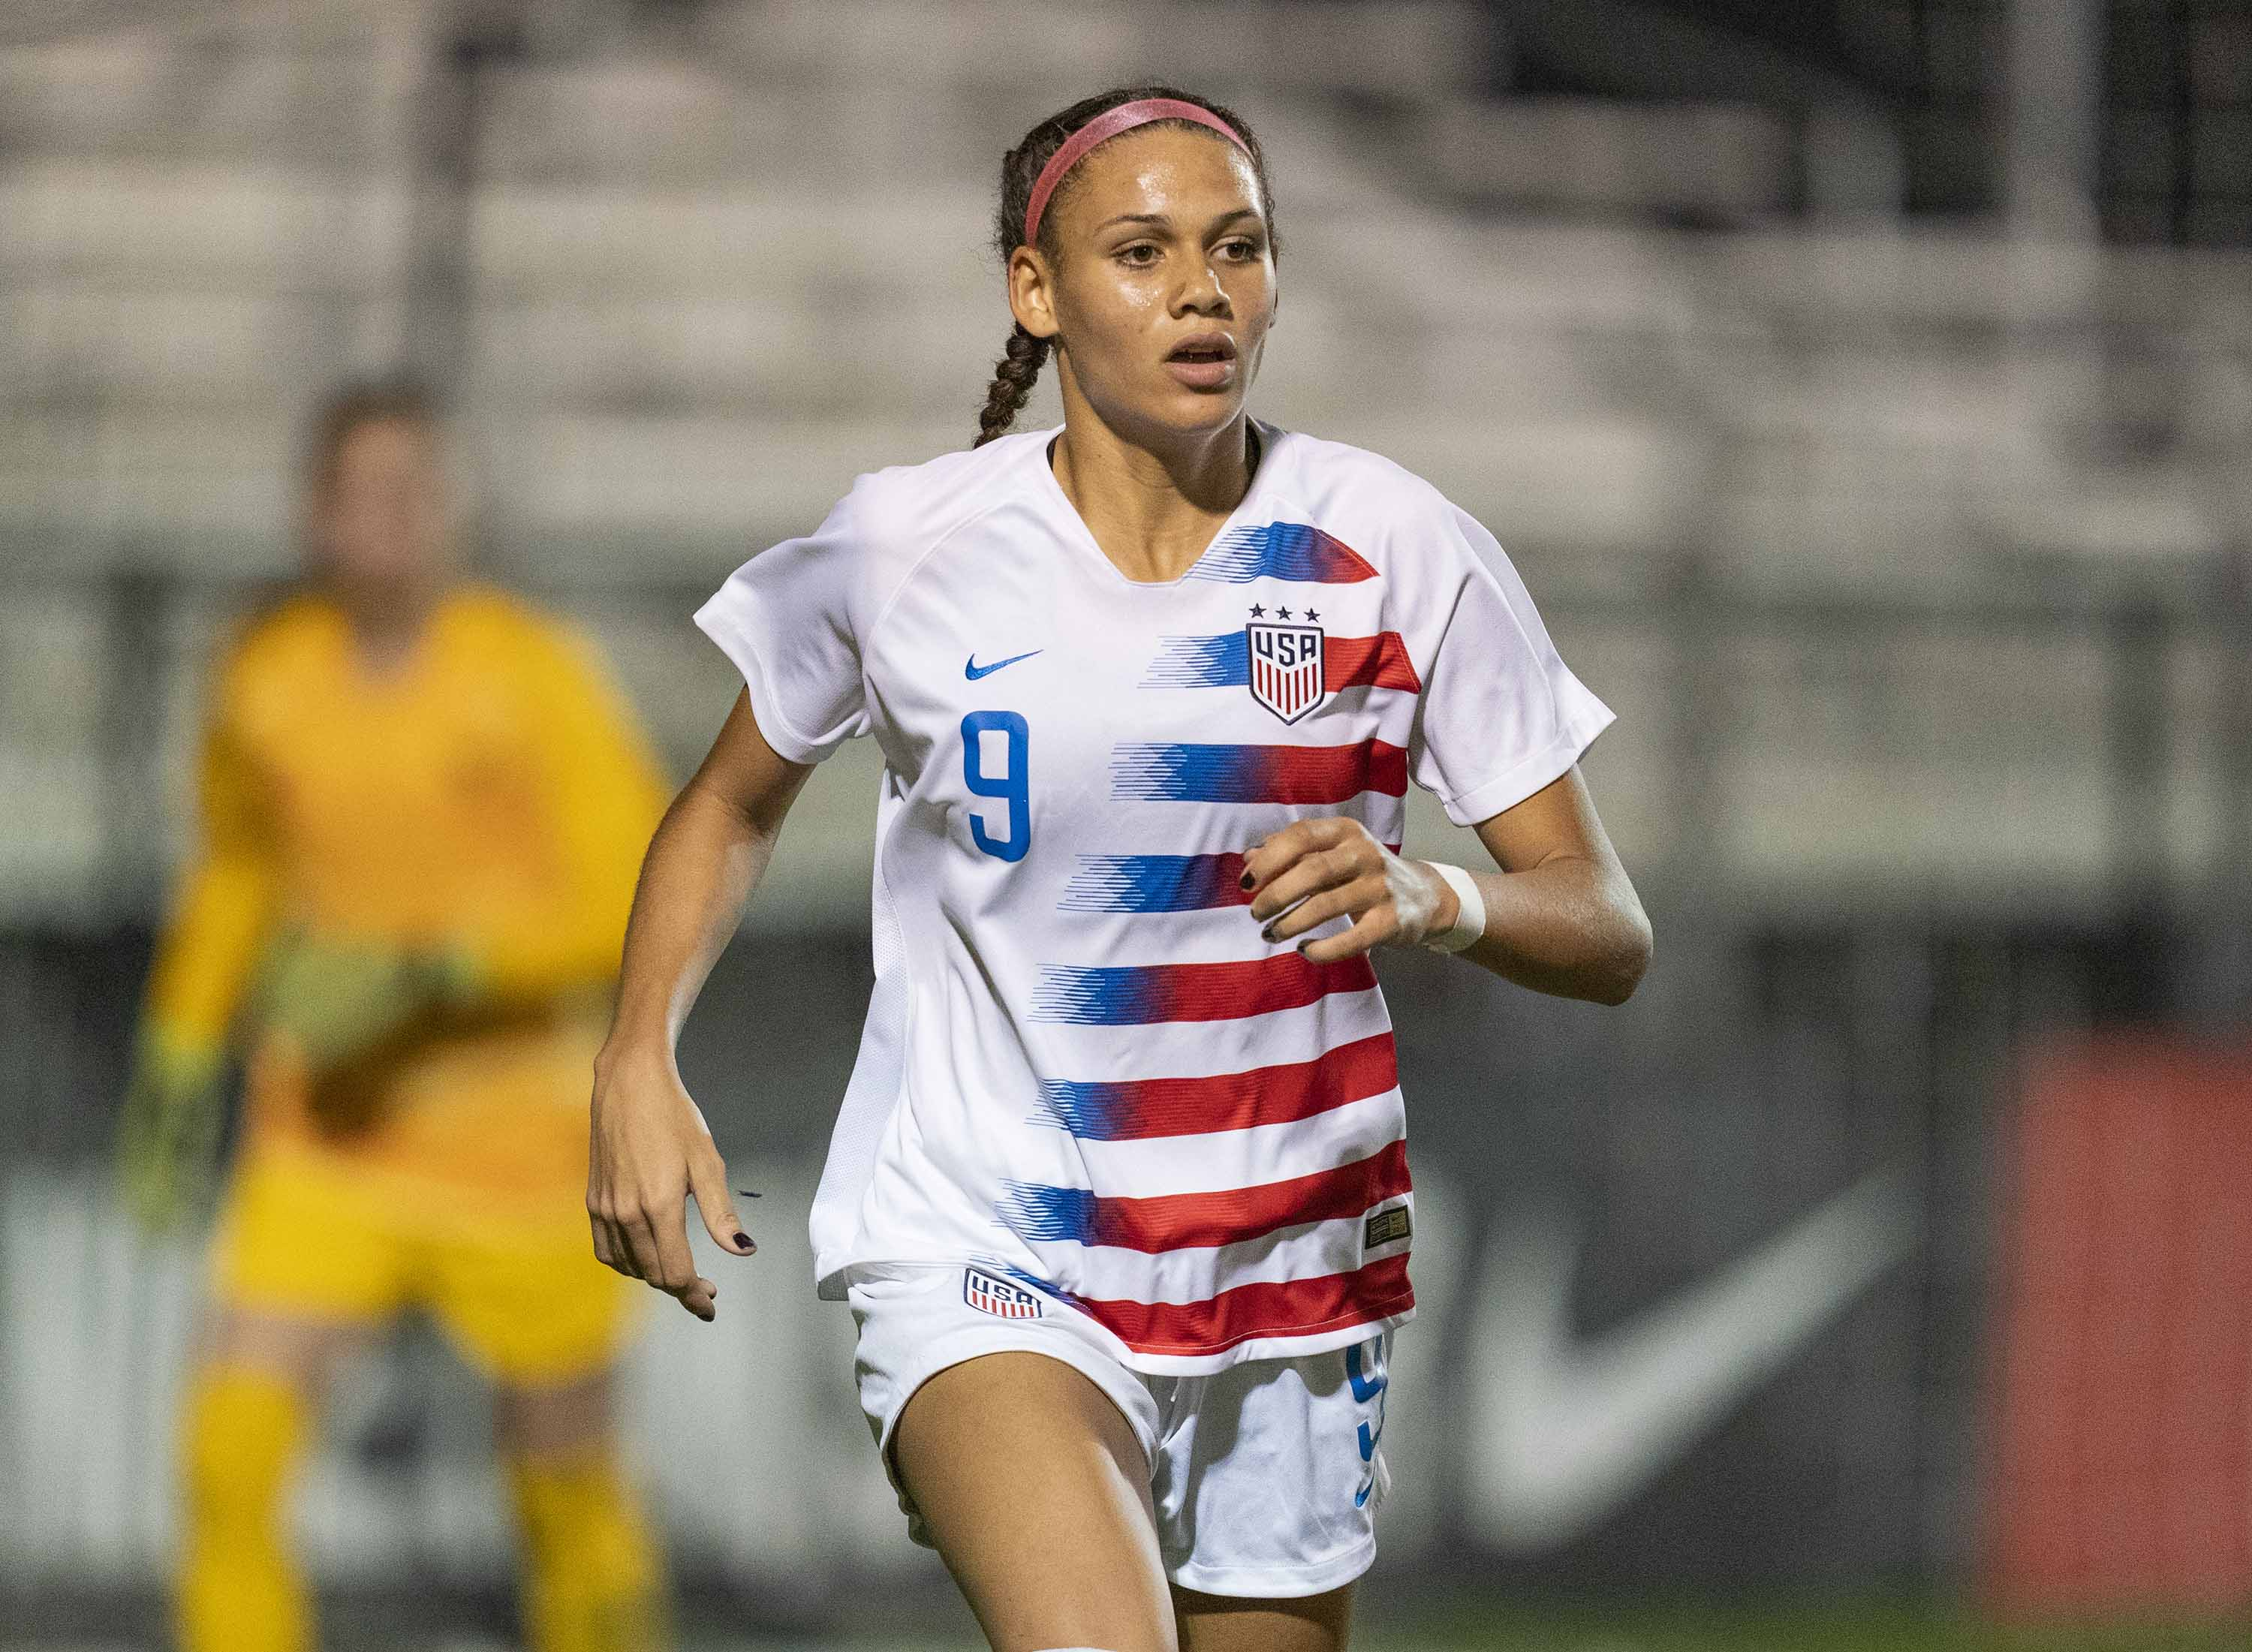 Trinity Rodman, daughter of the NBA legend, drafted 2nd overall in pro soccer league